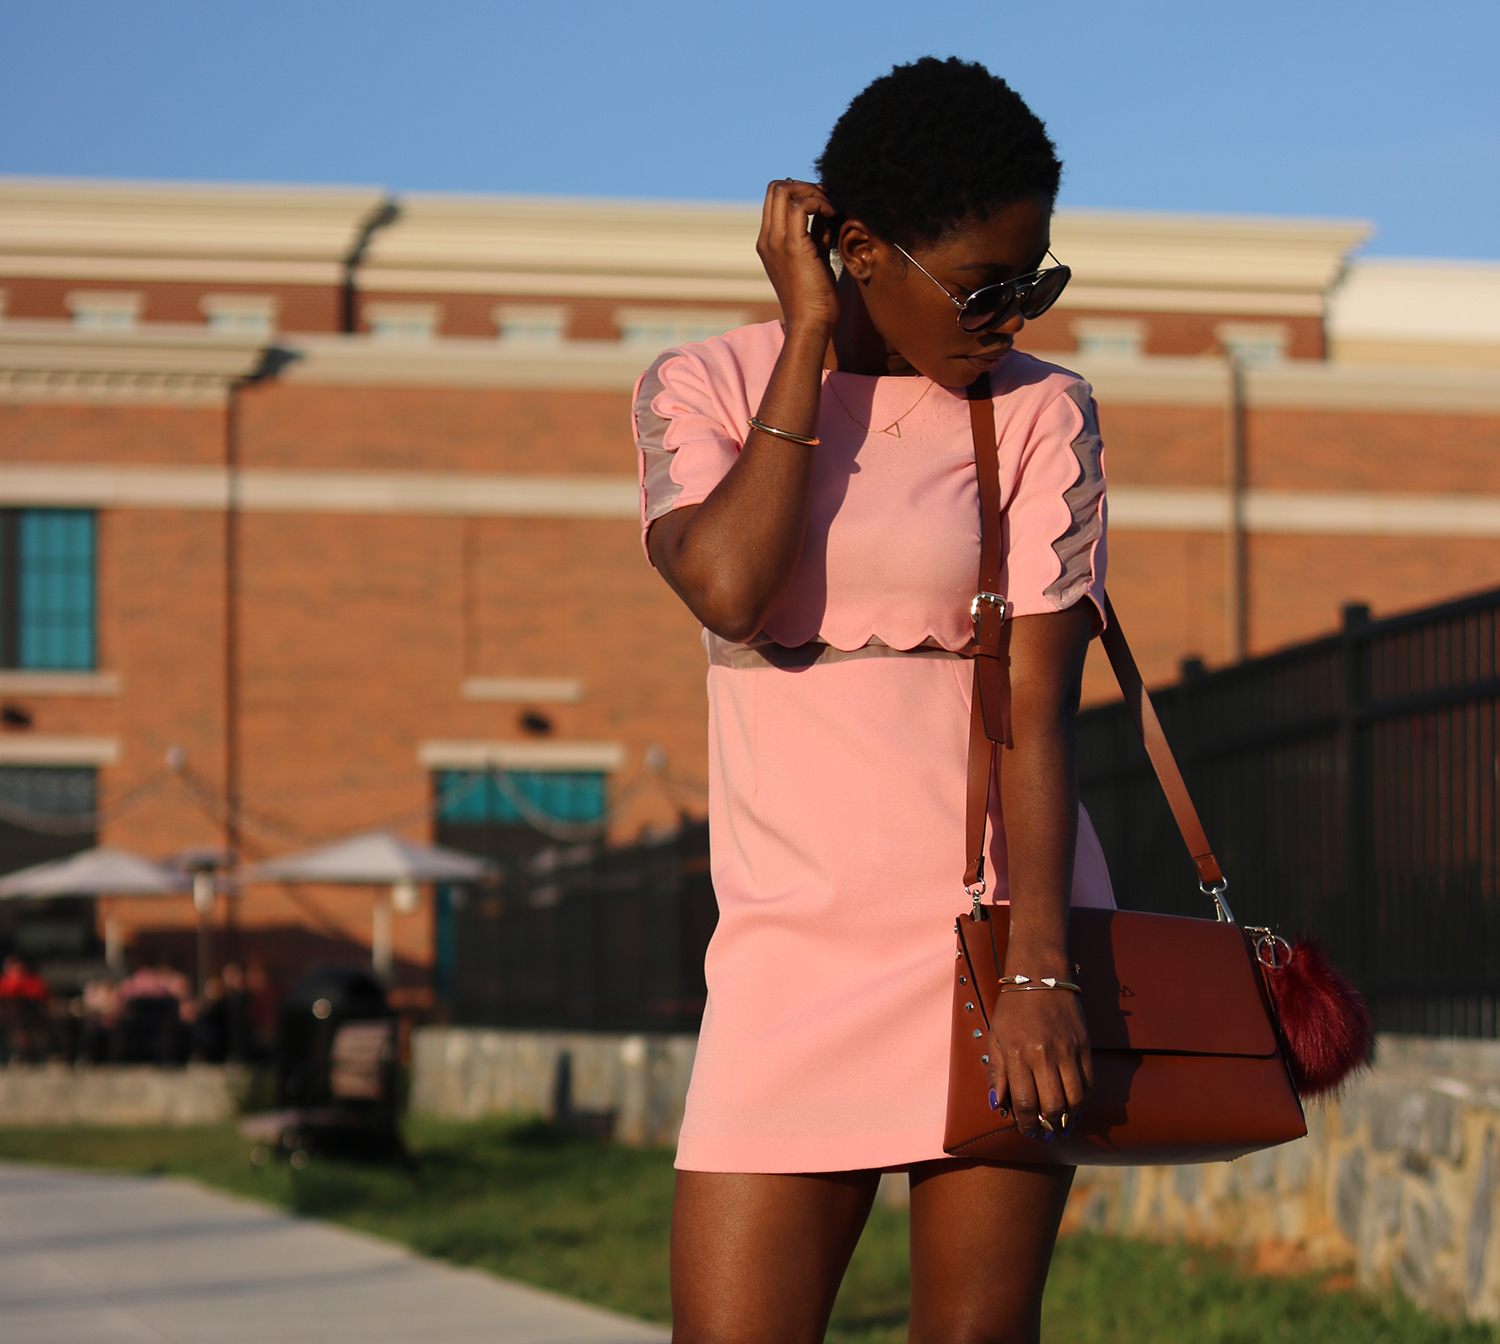 rust cross bag and scallop dress